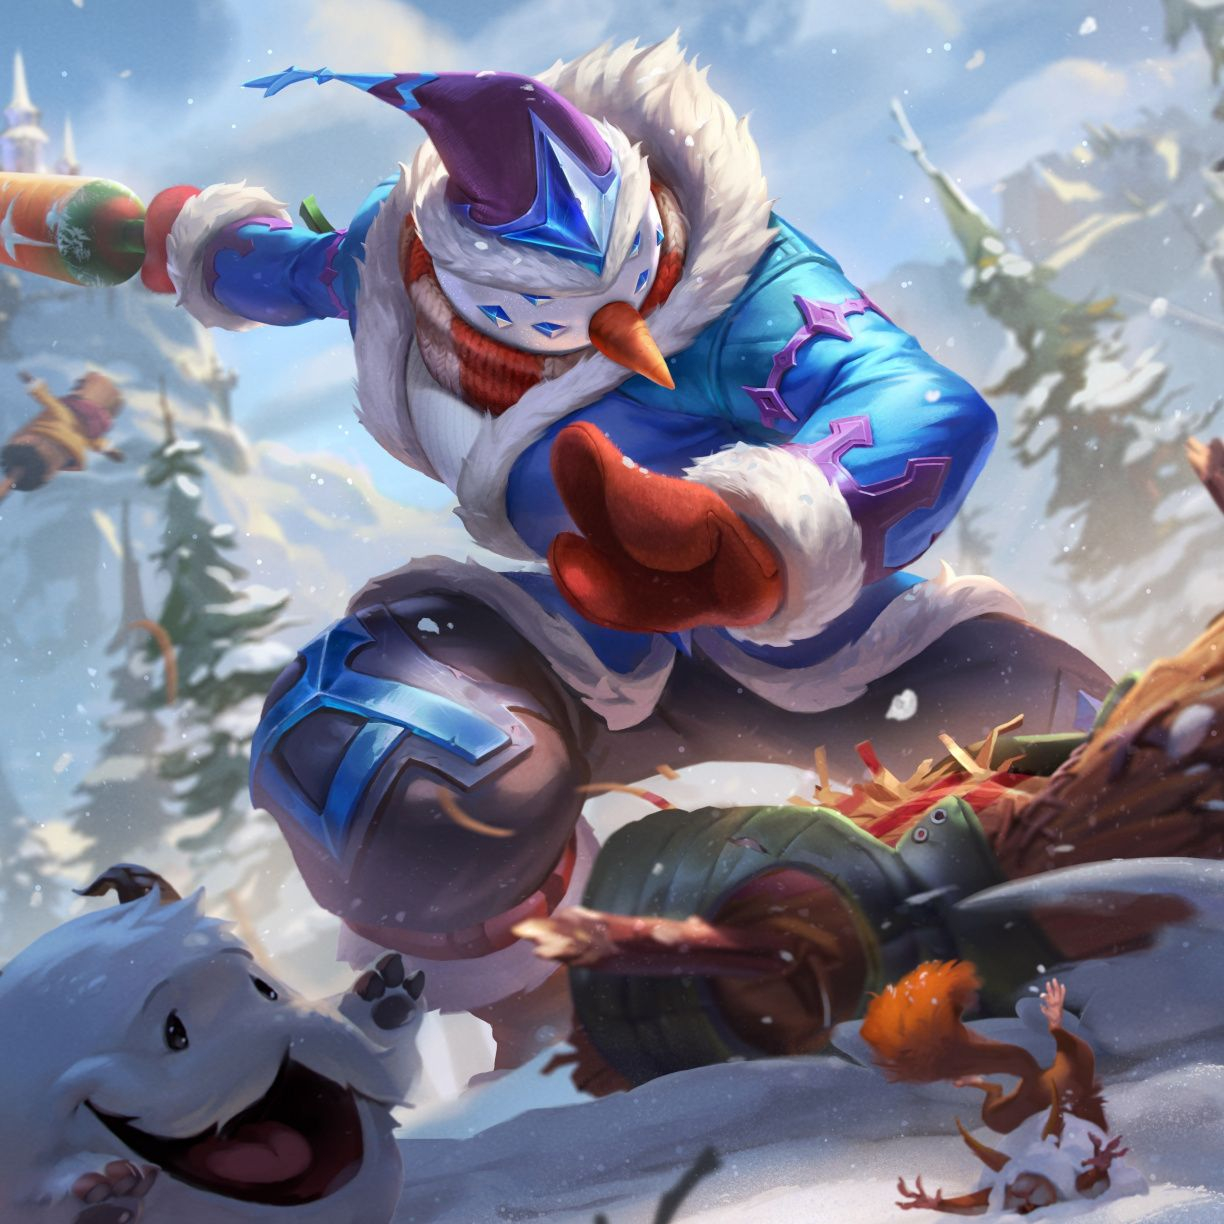 Snowman Master Yi Online Game 2018 League Of Legends 1224x1224 Wallpaper League Of Legends Lol League Of Legends Champions League Of Legends